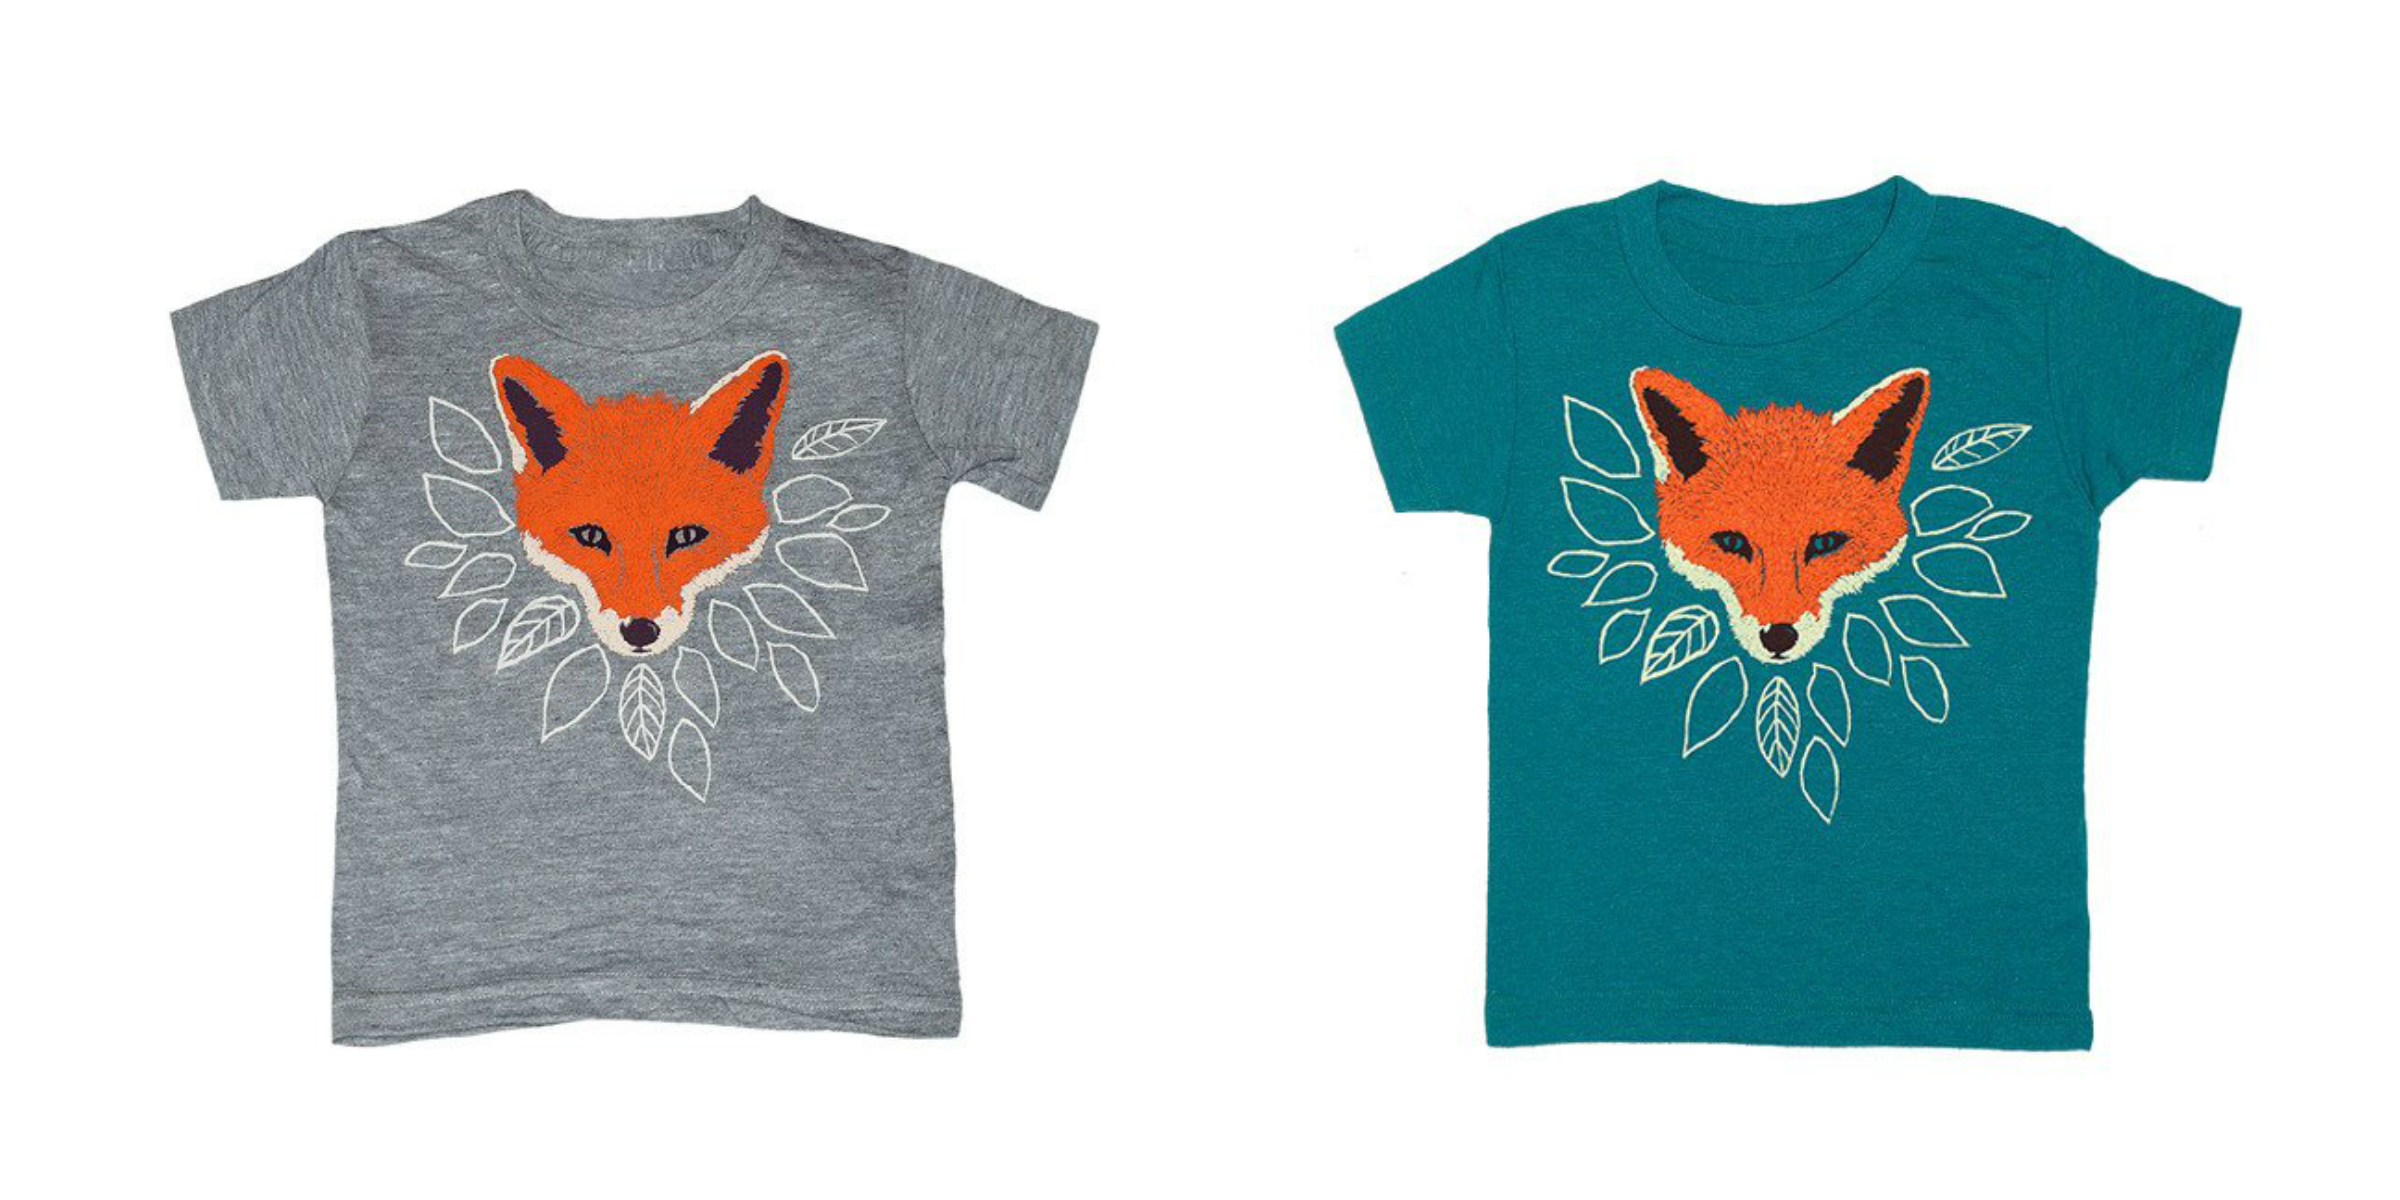 Back to School Fashion | Fox Kids Gear | Kids T-Shirt | Fox T-Shirt